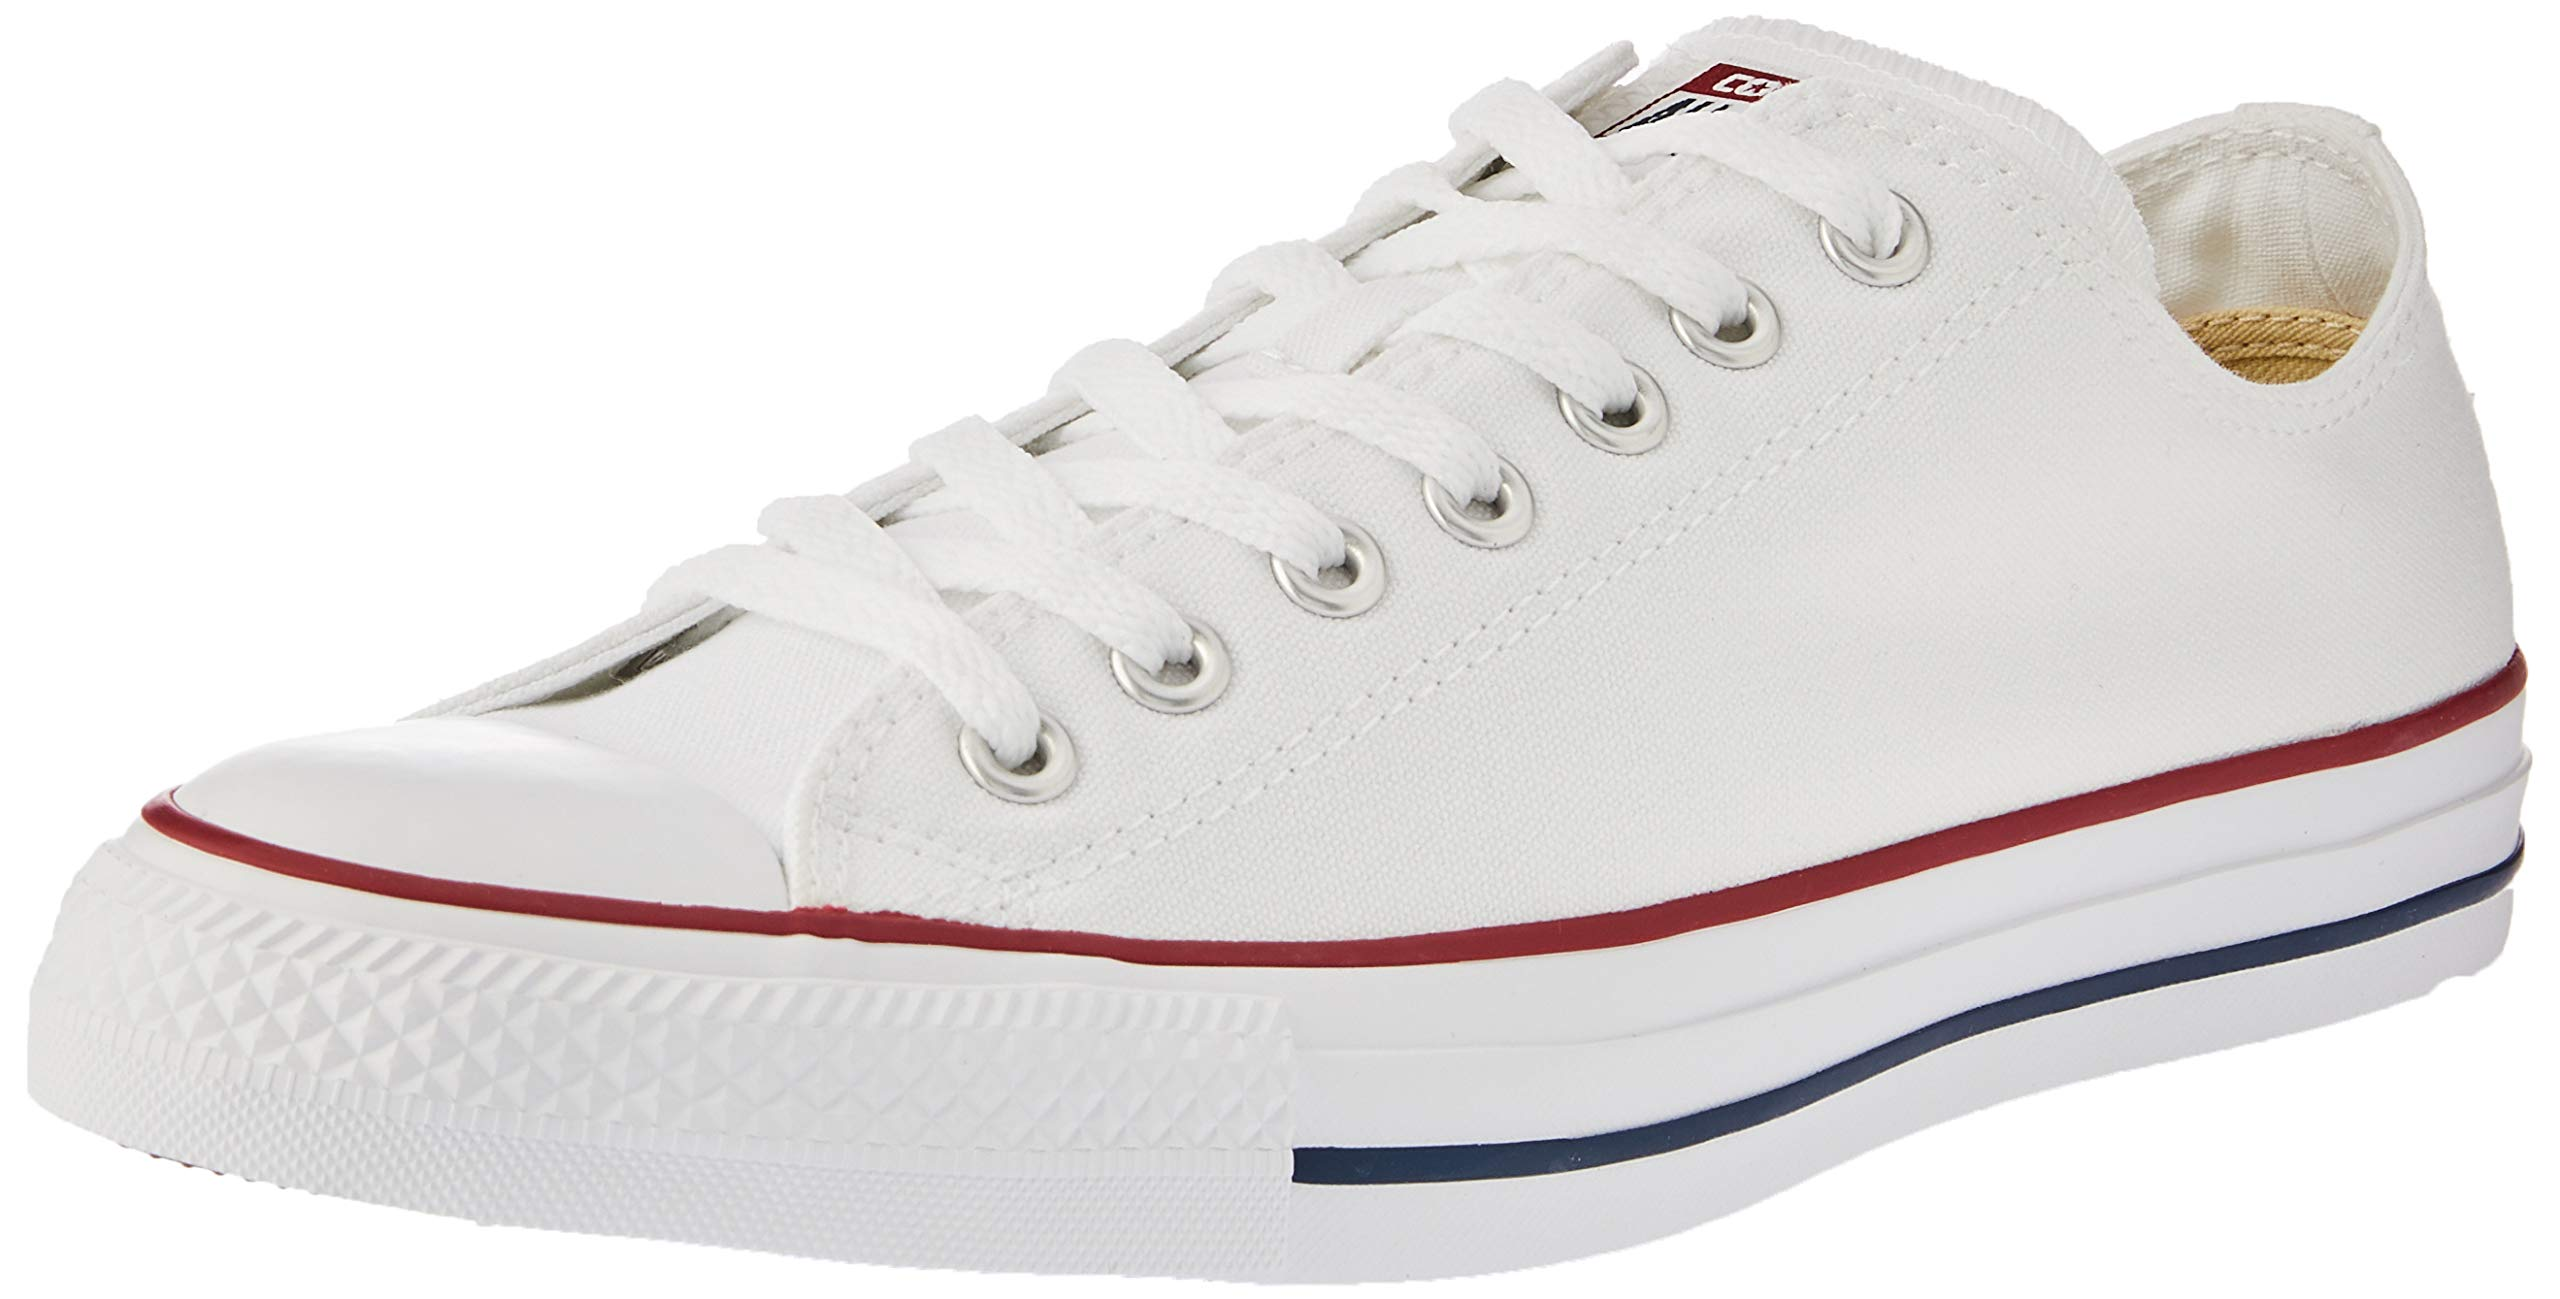 Converse Unisex Chuck Taylor All Star Low Top Optical White Sneakers - 7.5 D(M) by Converse